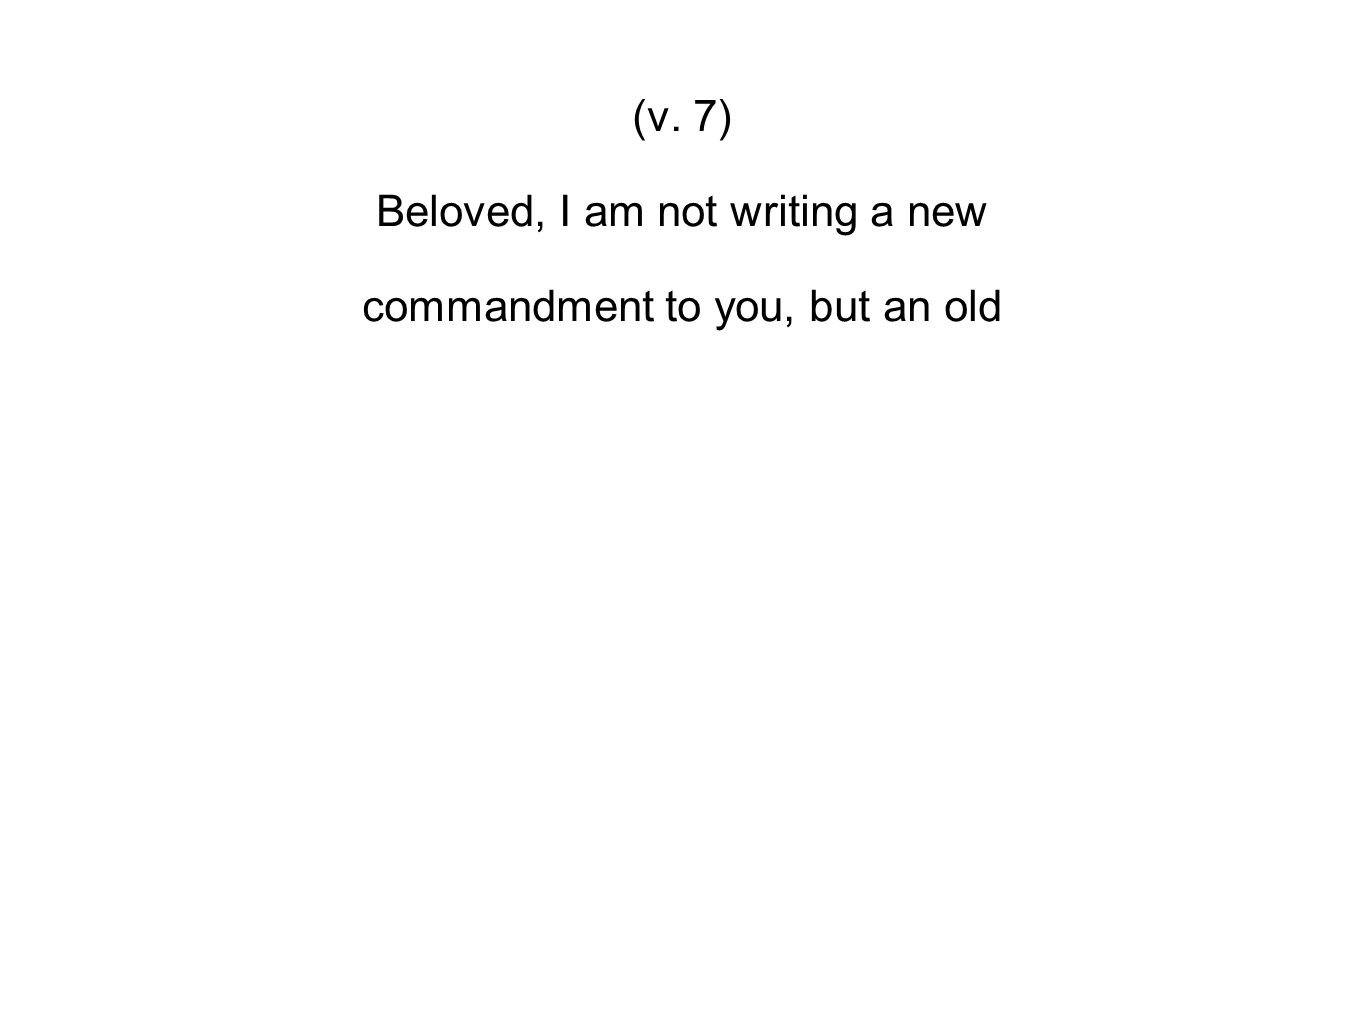 (v. 7) Beloved, I am not writing a new commandment to you, but an old